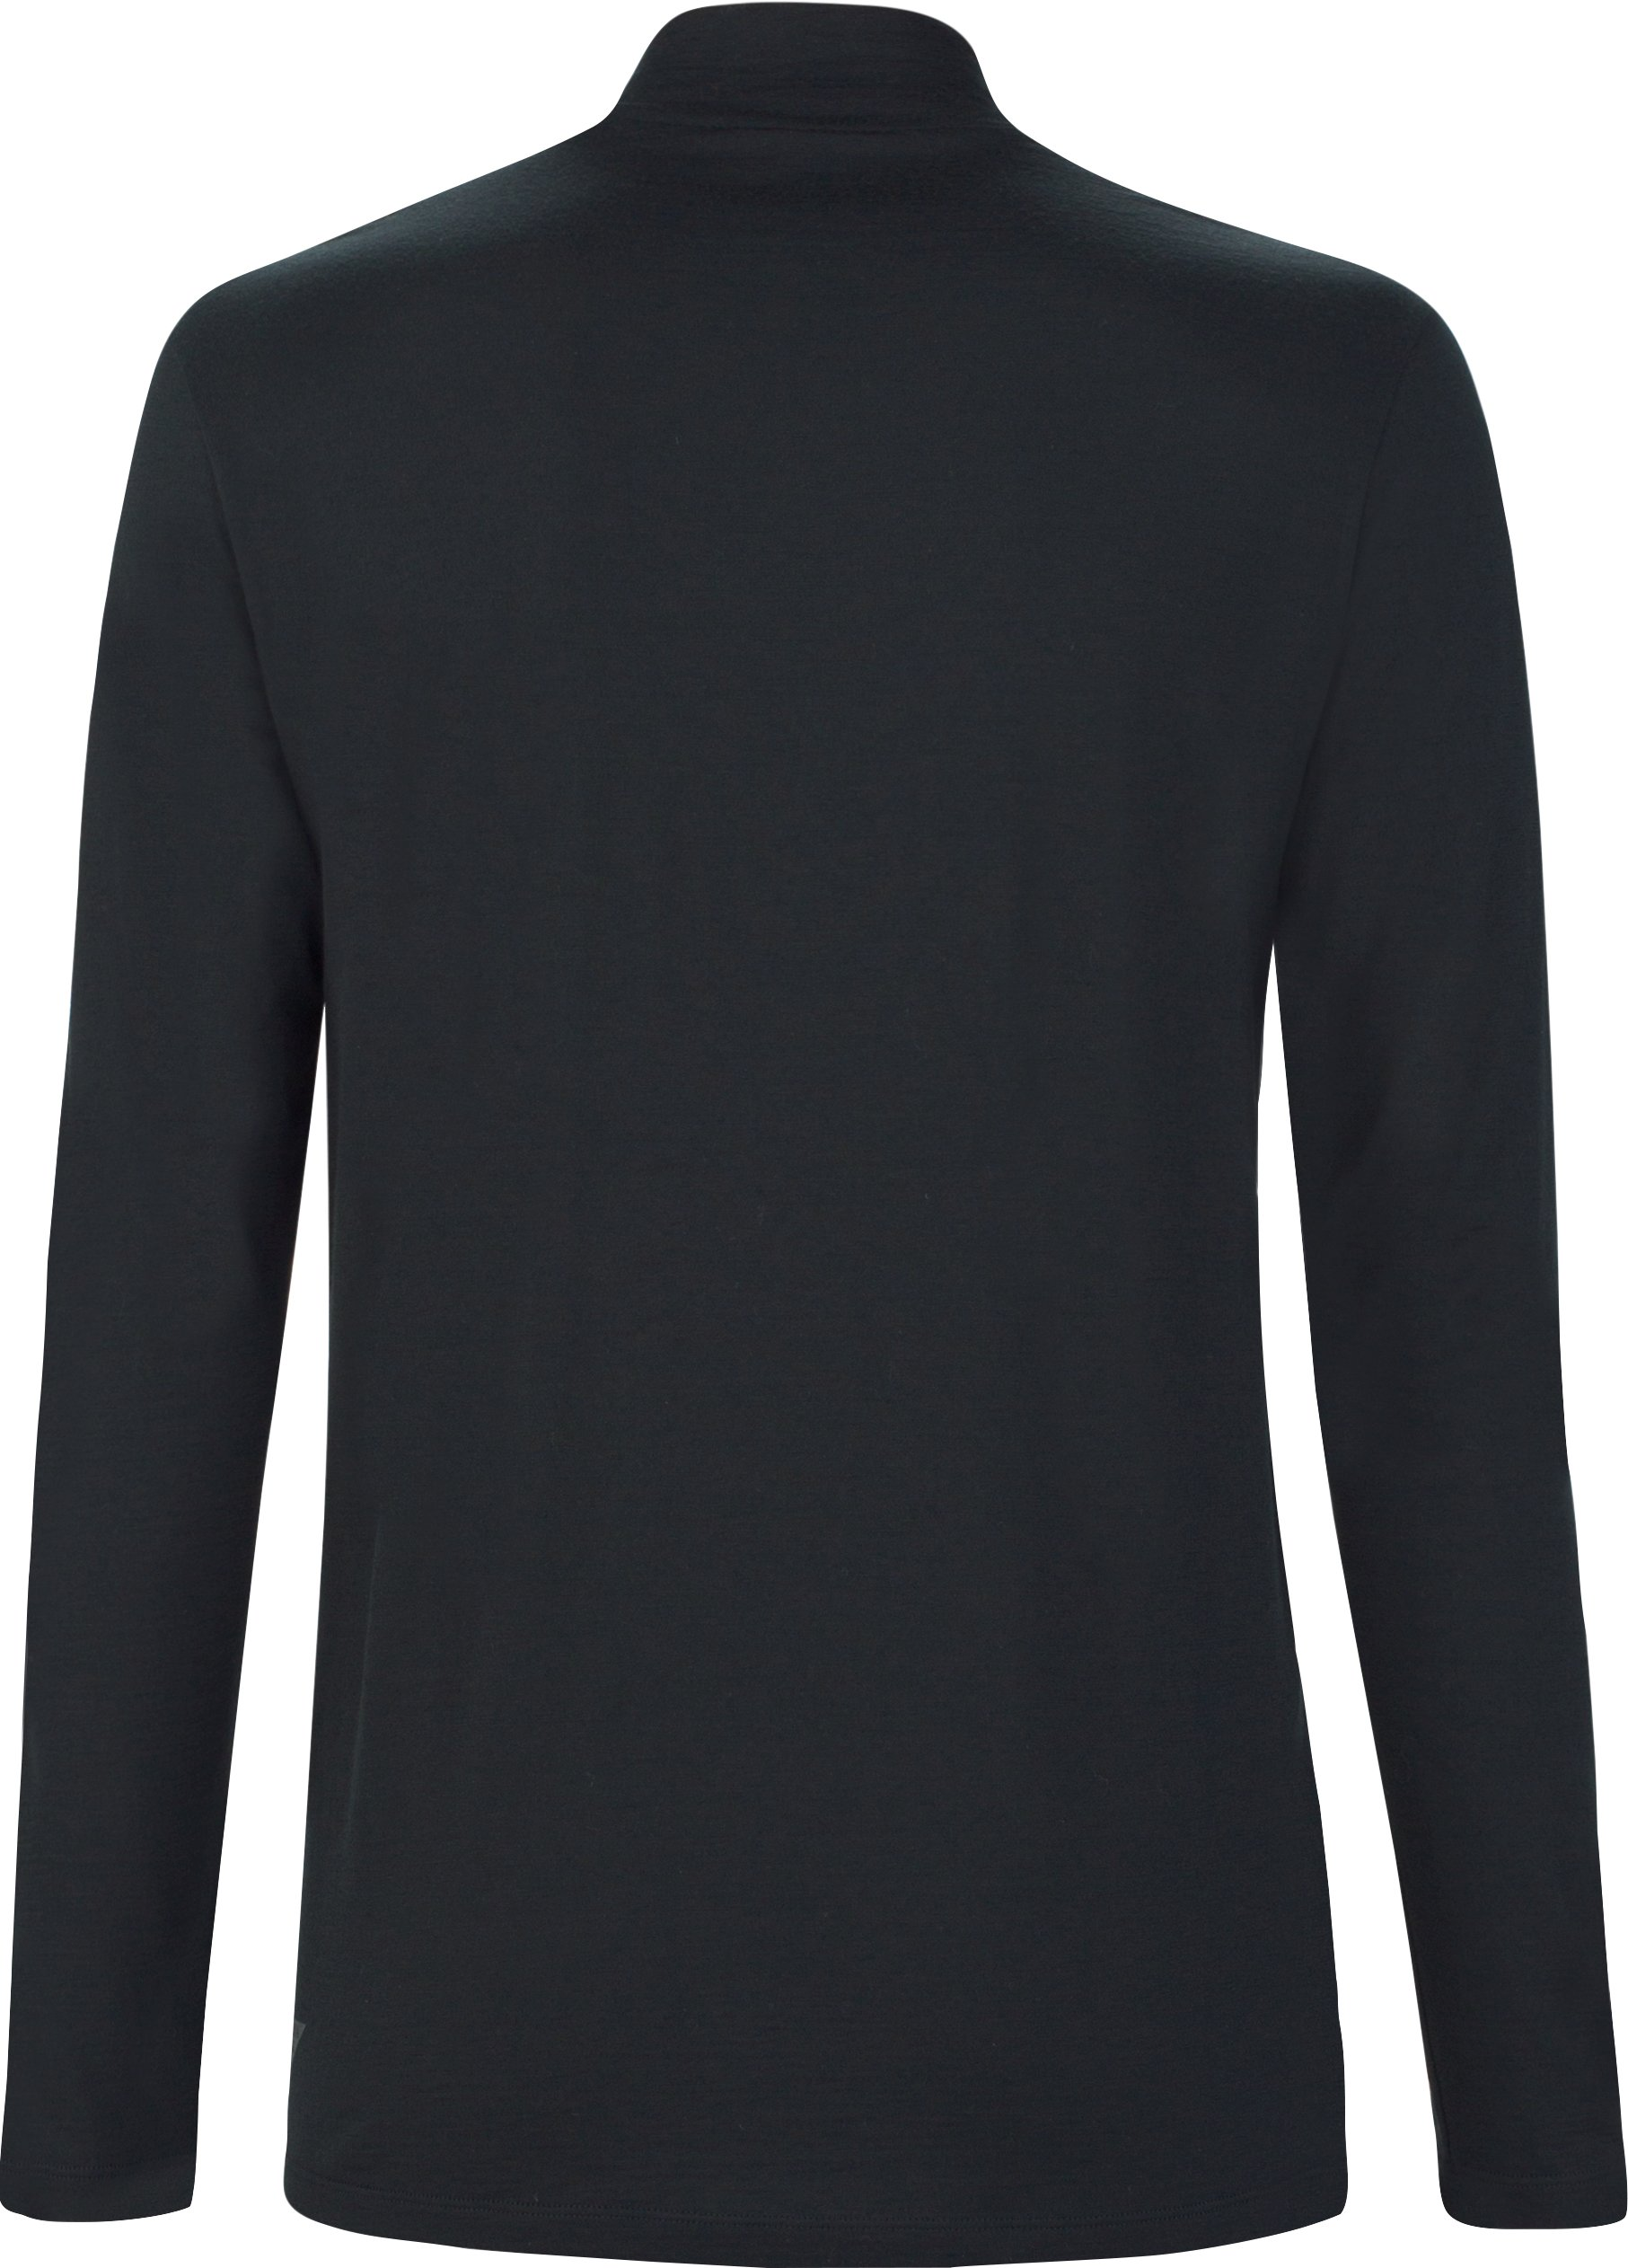 Men's UAS Prime Long Sleeve Mock, Black